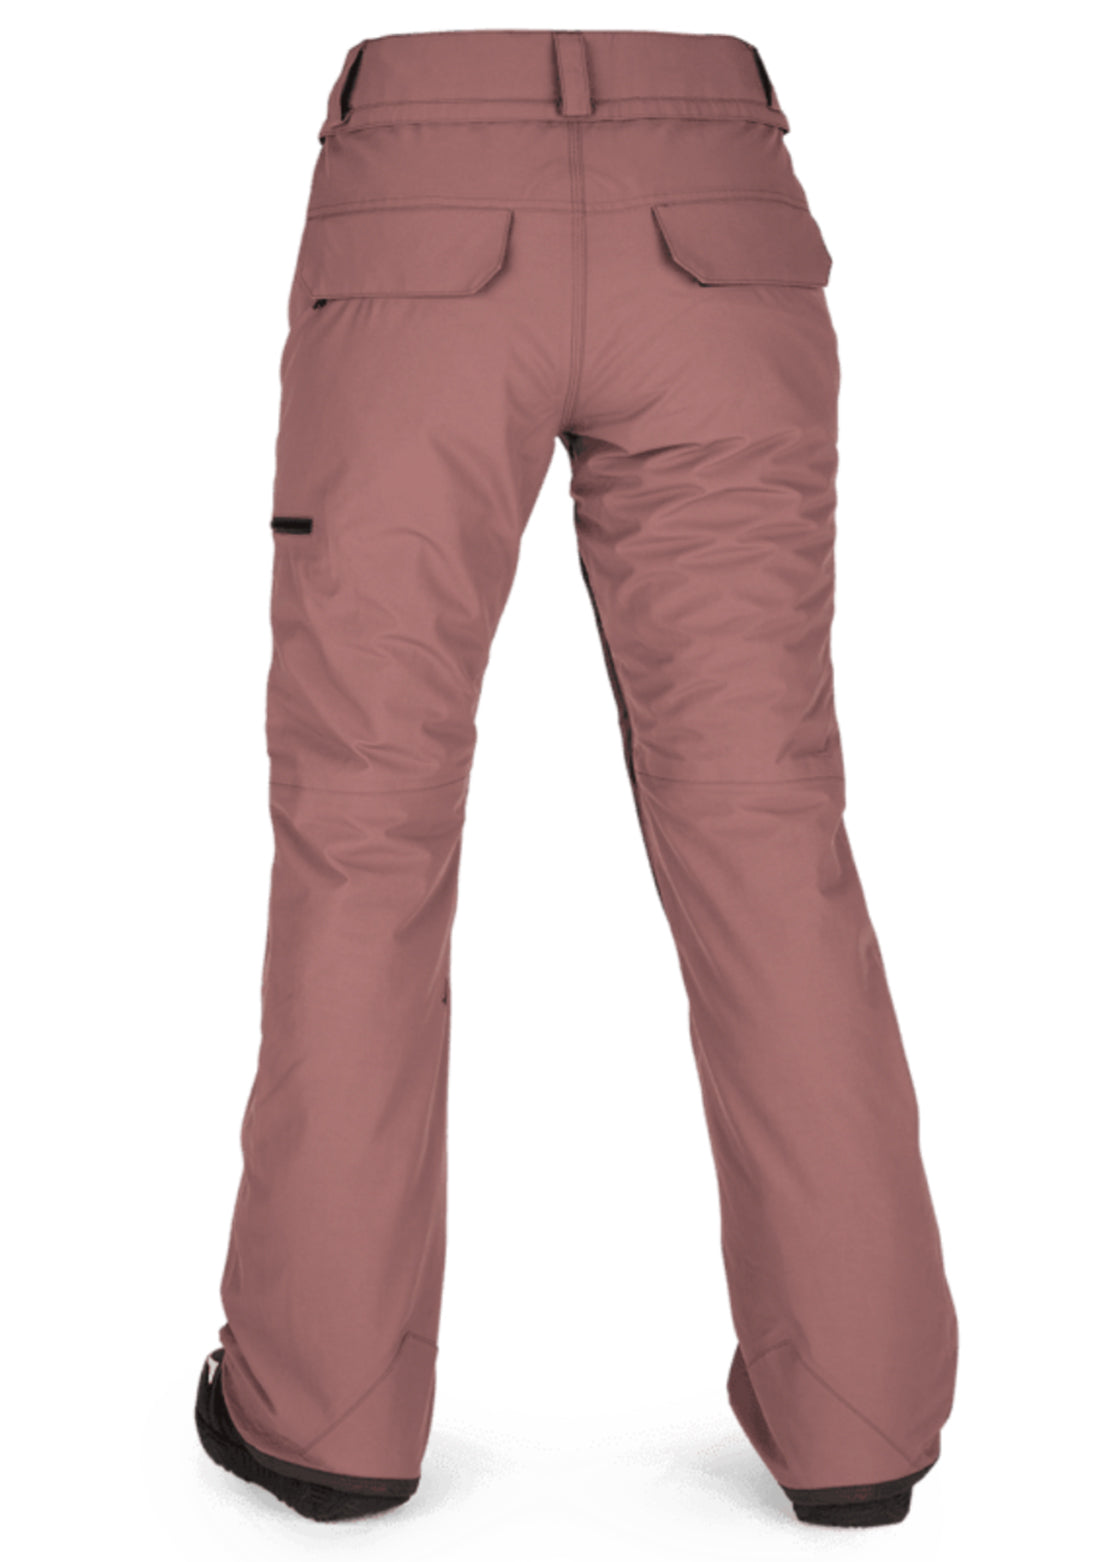 Volcom Women's Knox Insulated GORE-TEX Pants Rose Wood